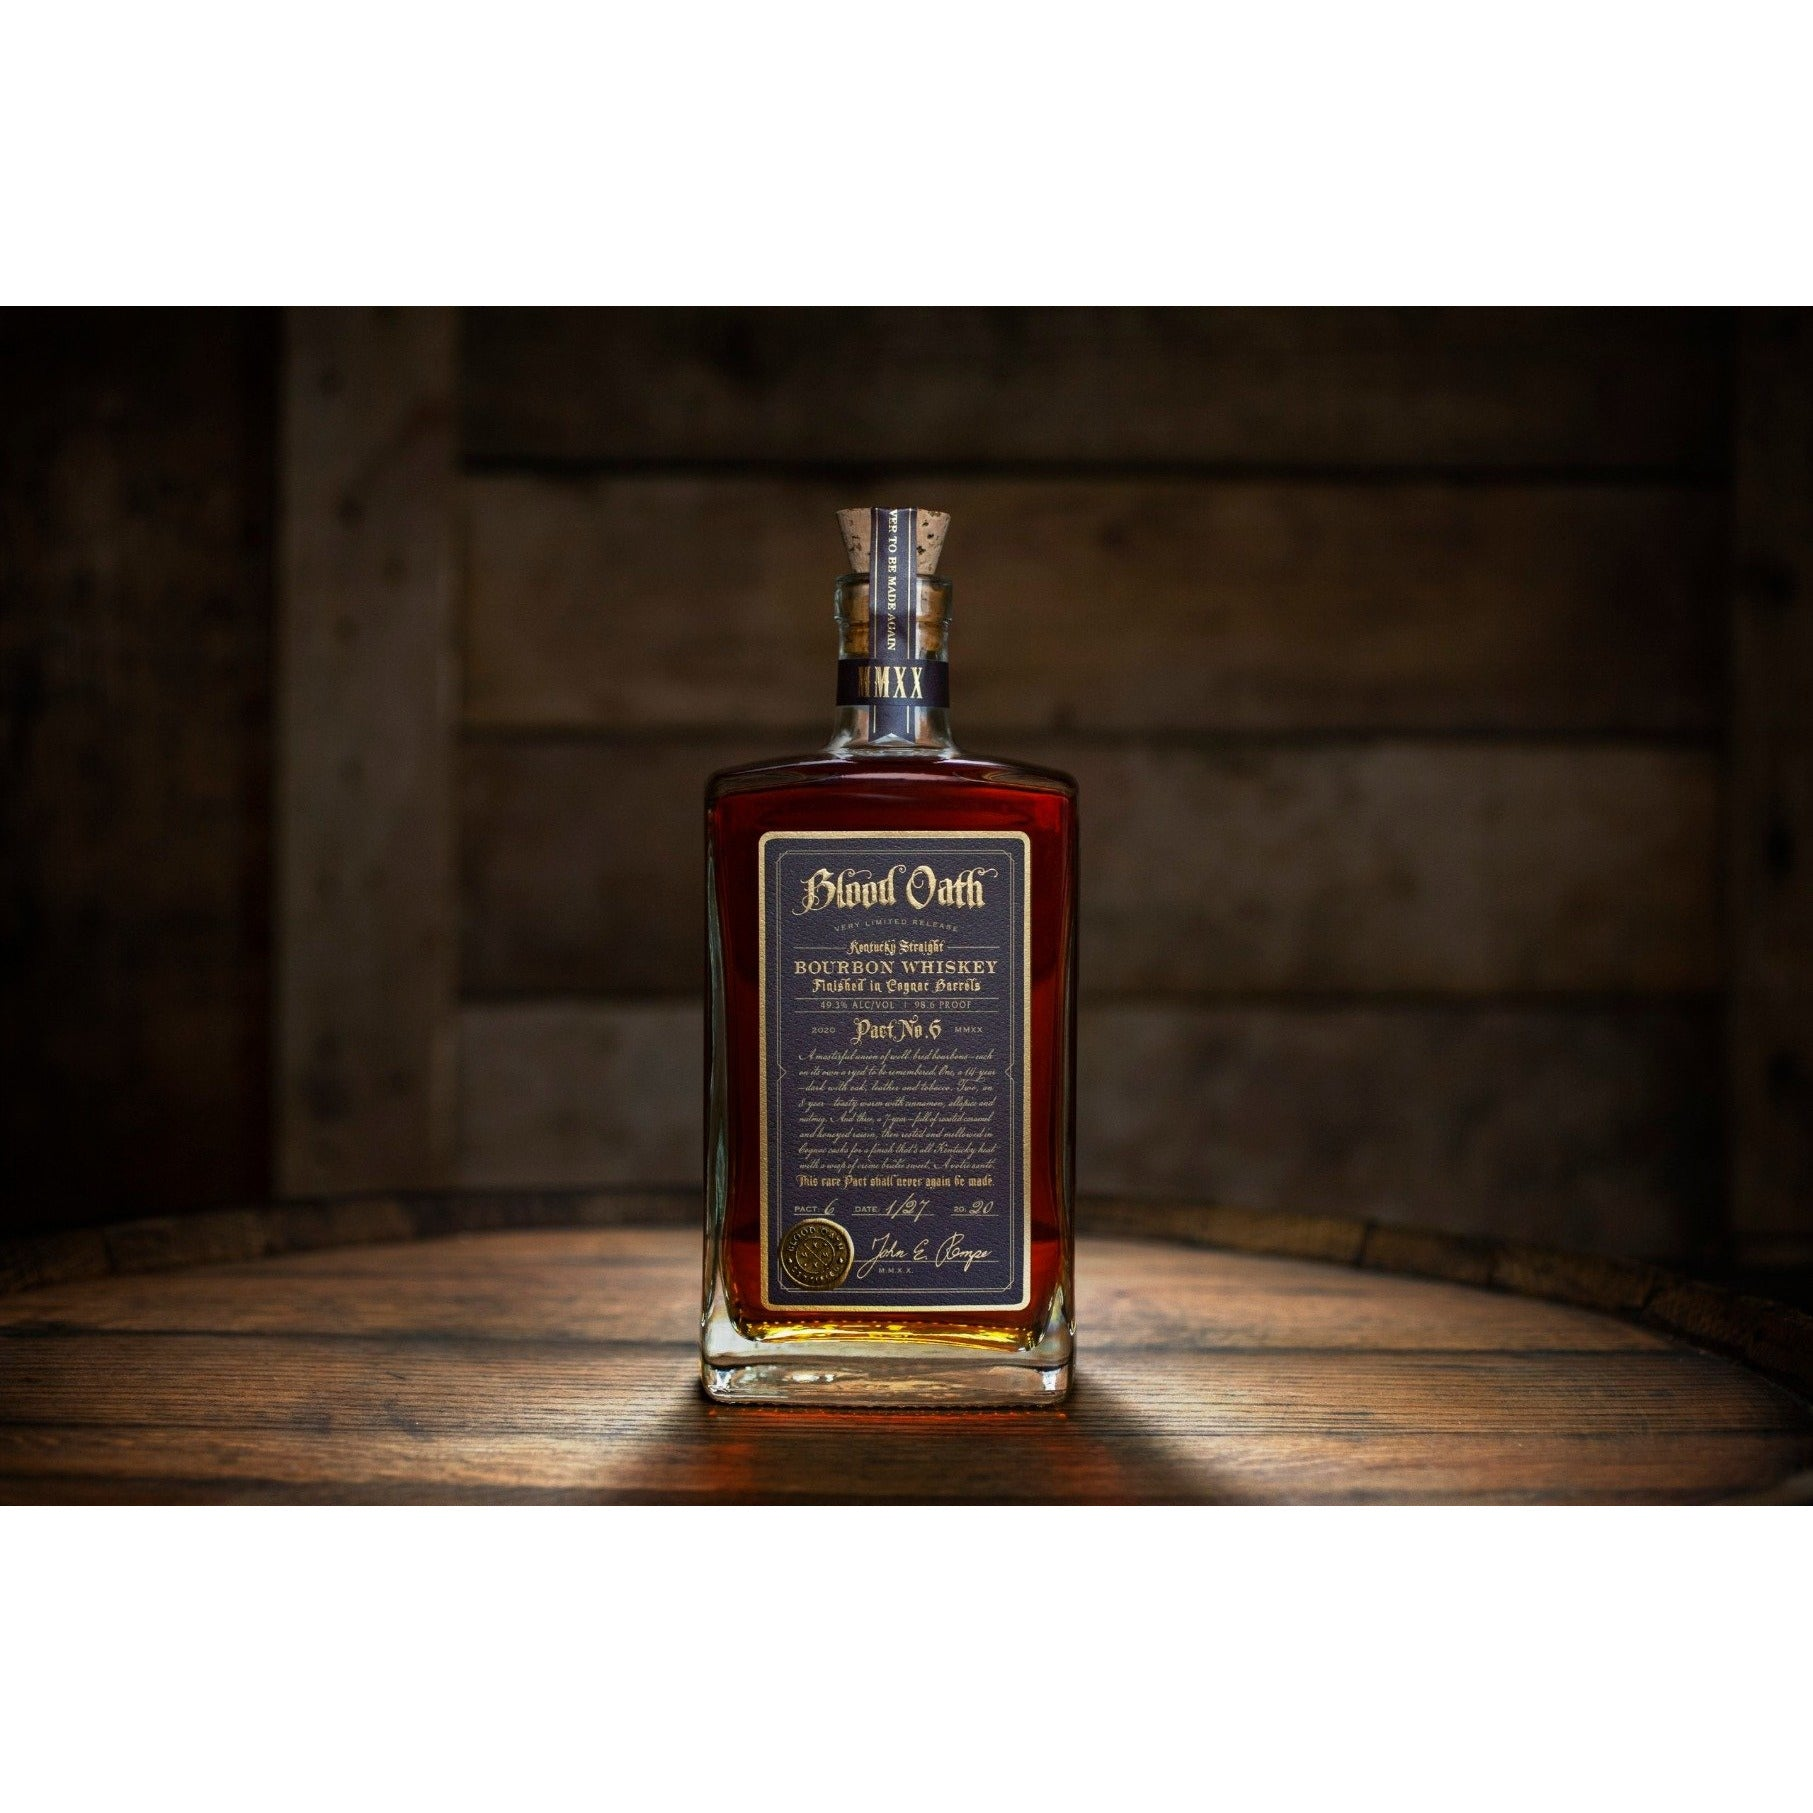 Blood Oath Pact No.6 2020 Kentucky Straight Bourbon Whiskey (750mL)